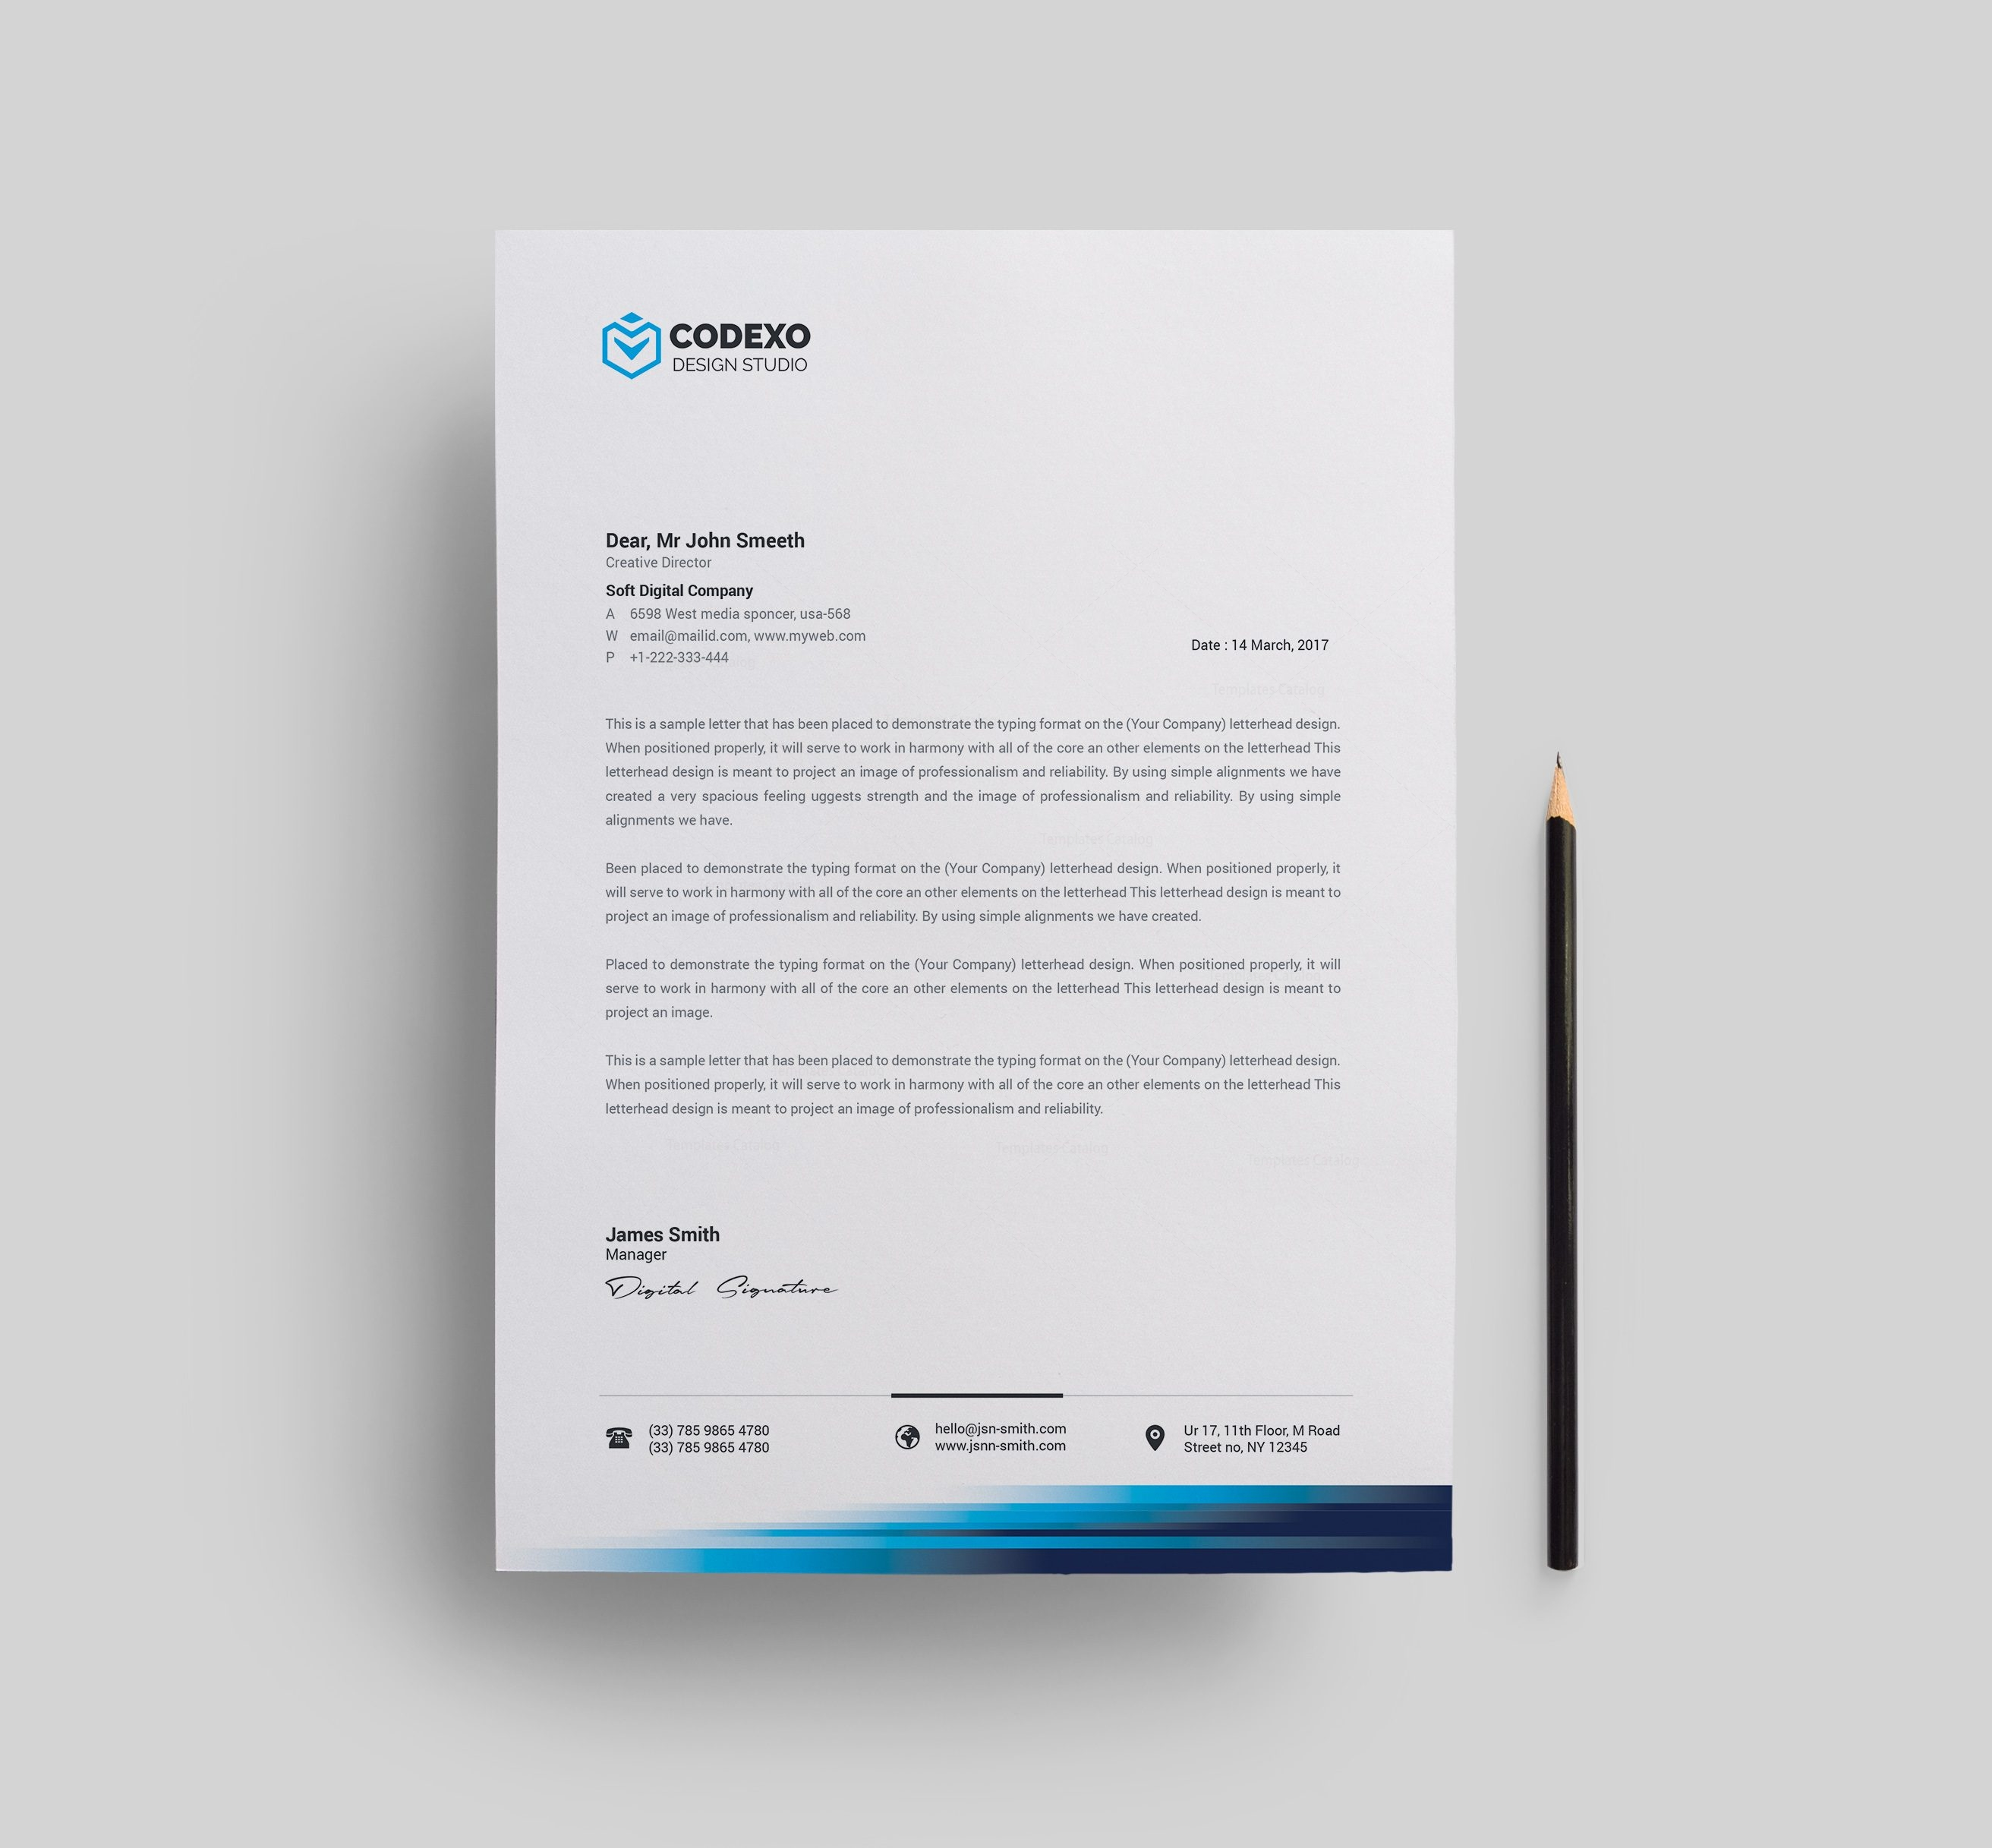 Letterhead example letterhead examples letterhead examples word letterhead template kleo spiritdancerdesigns Gallery